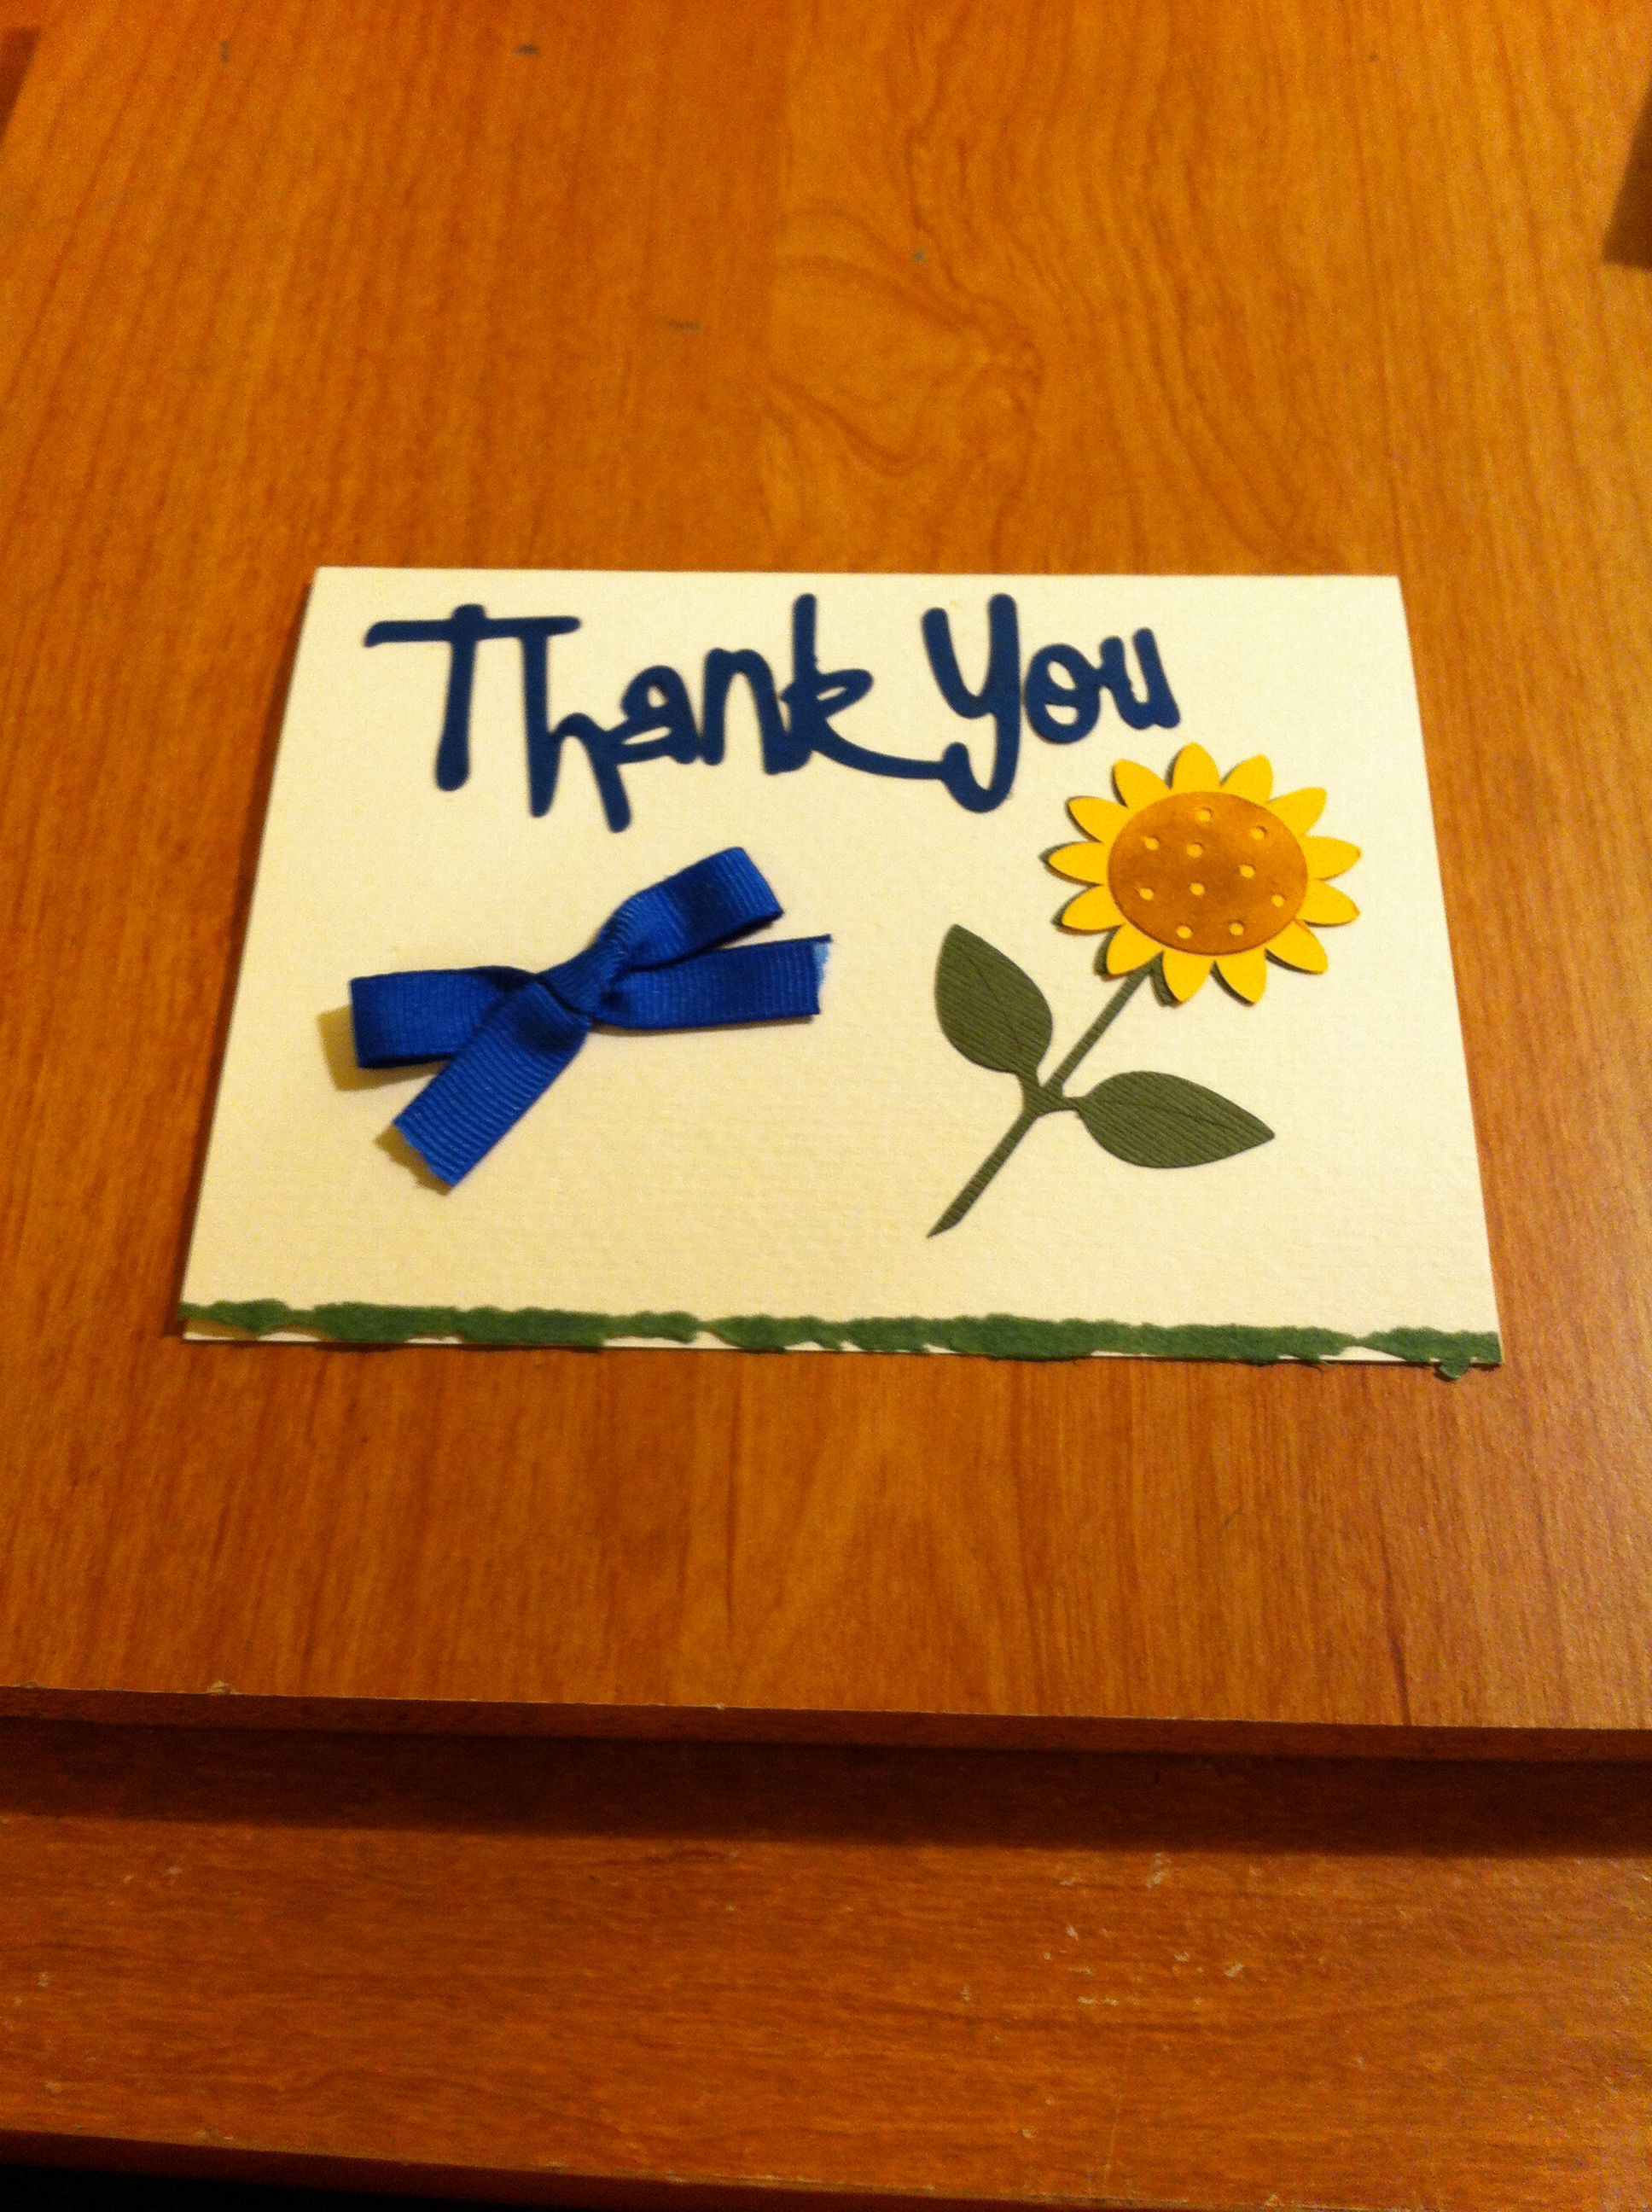 Thank you card | Homemade cards | Pinterest: pinterest.com/pin/400820435557239879